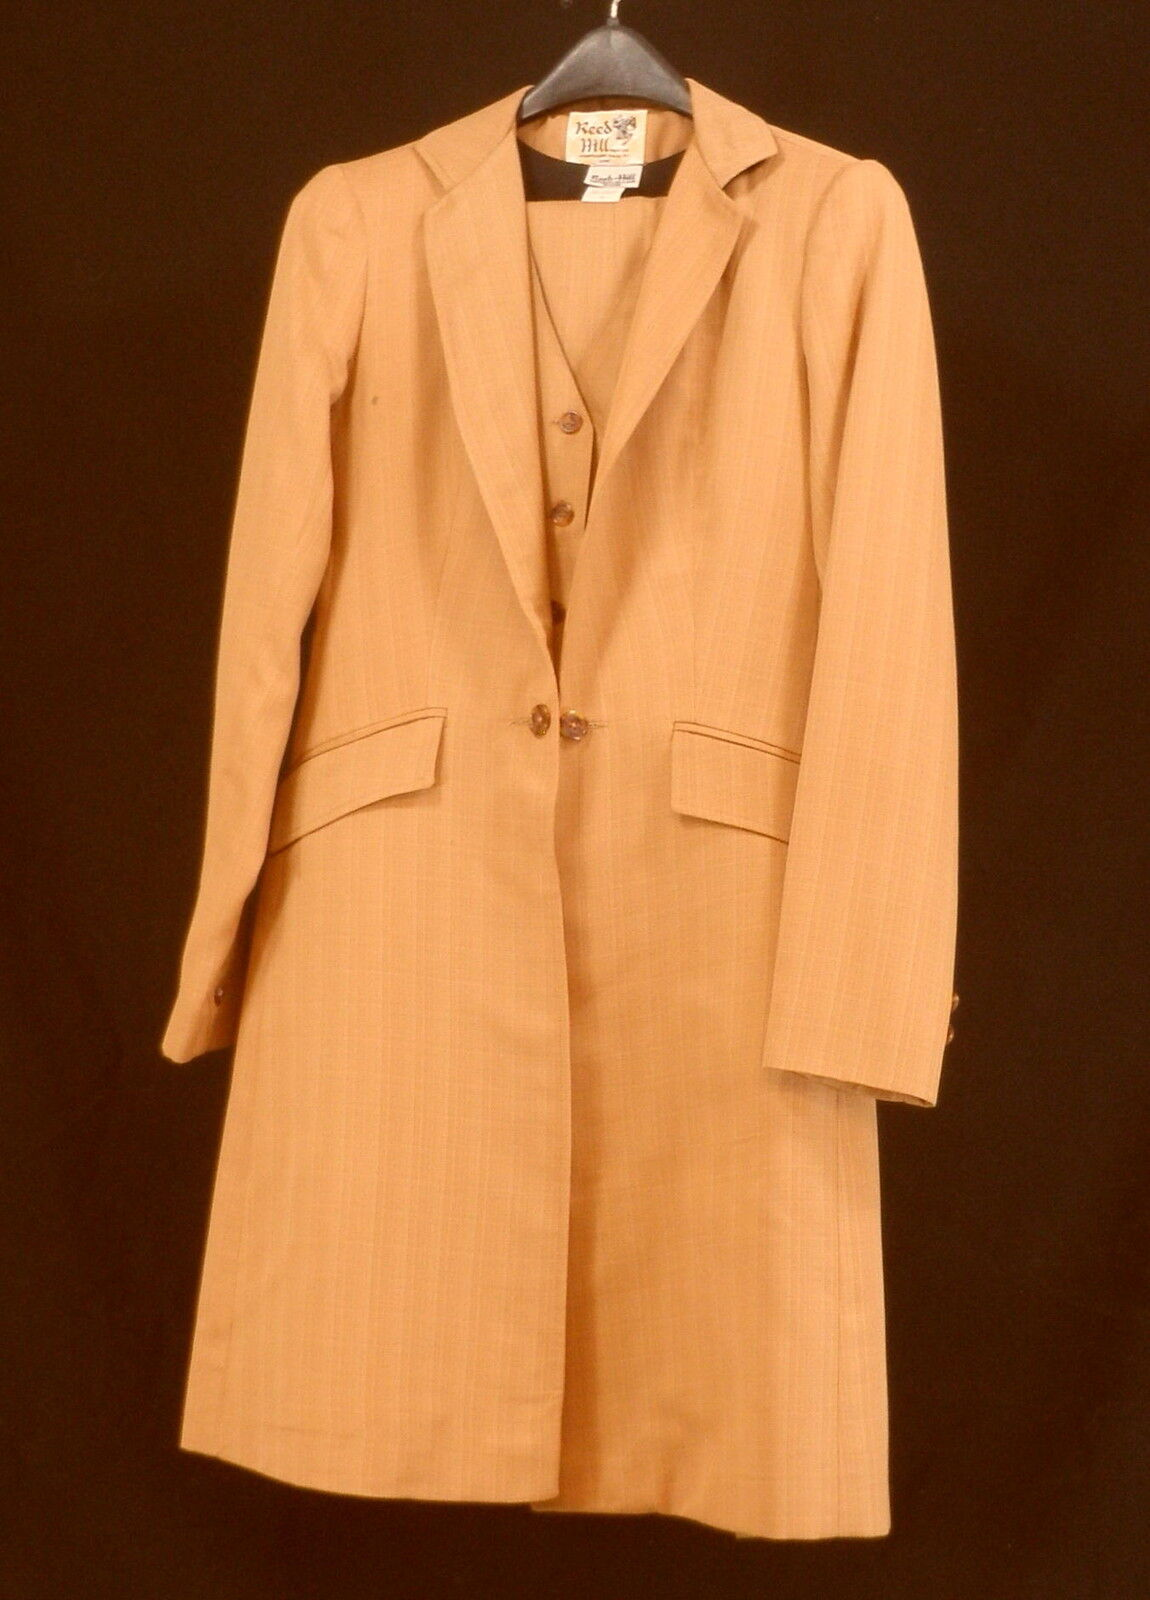 Reed Hill Saddleseat suit 3 piece Pumpkin Spice   Bronze Poly 10 - Made in USA